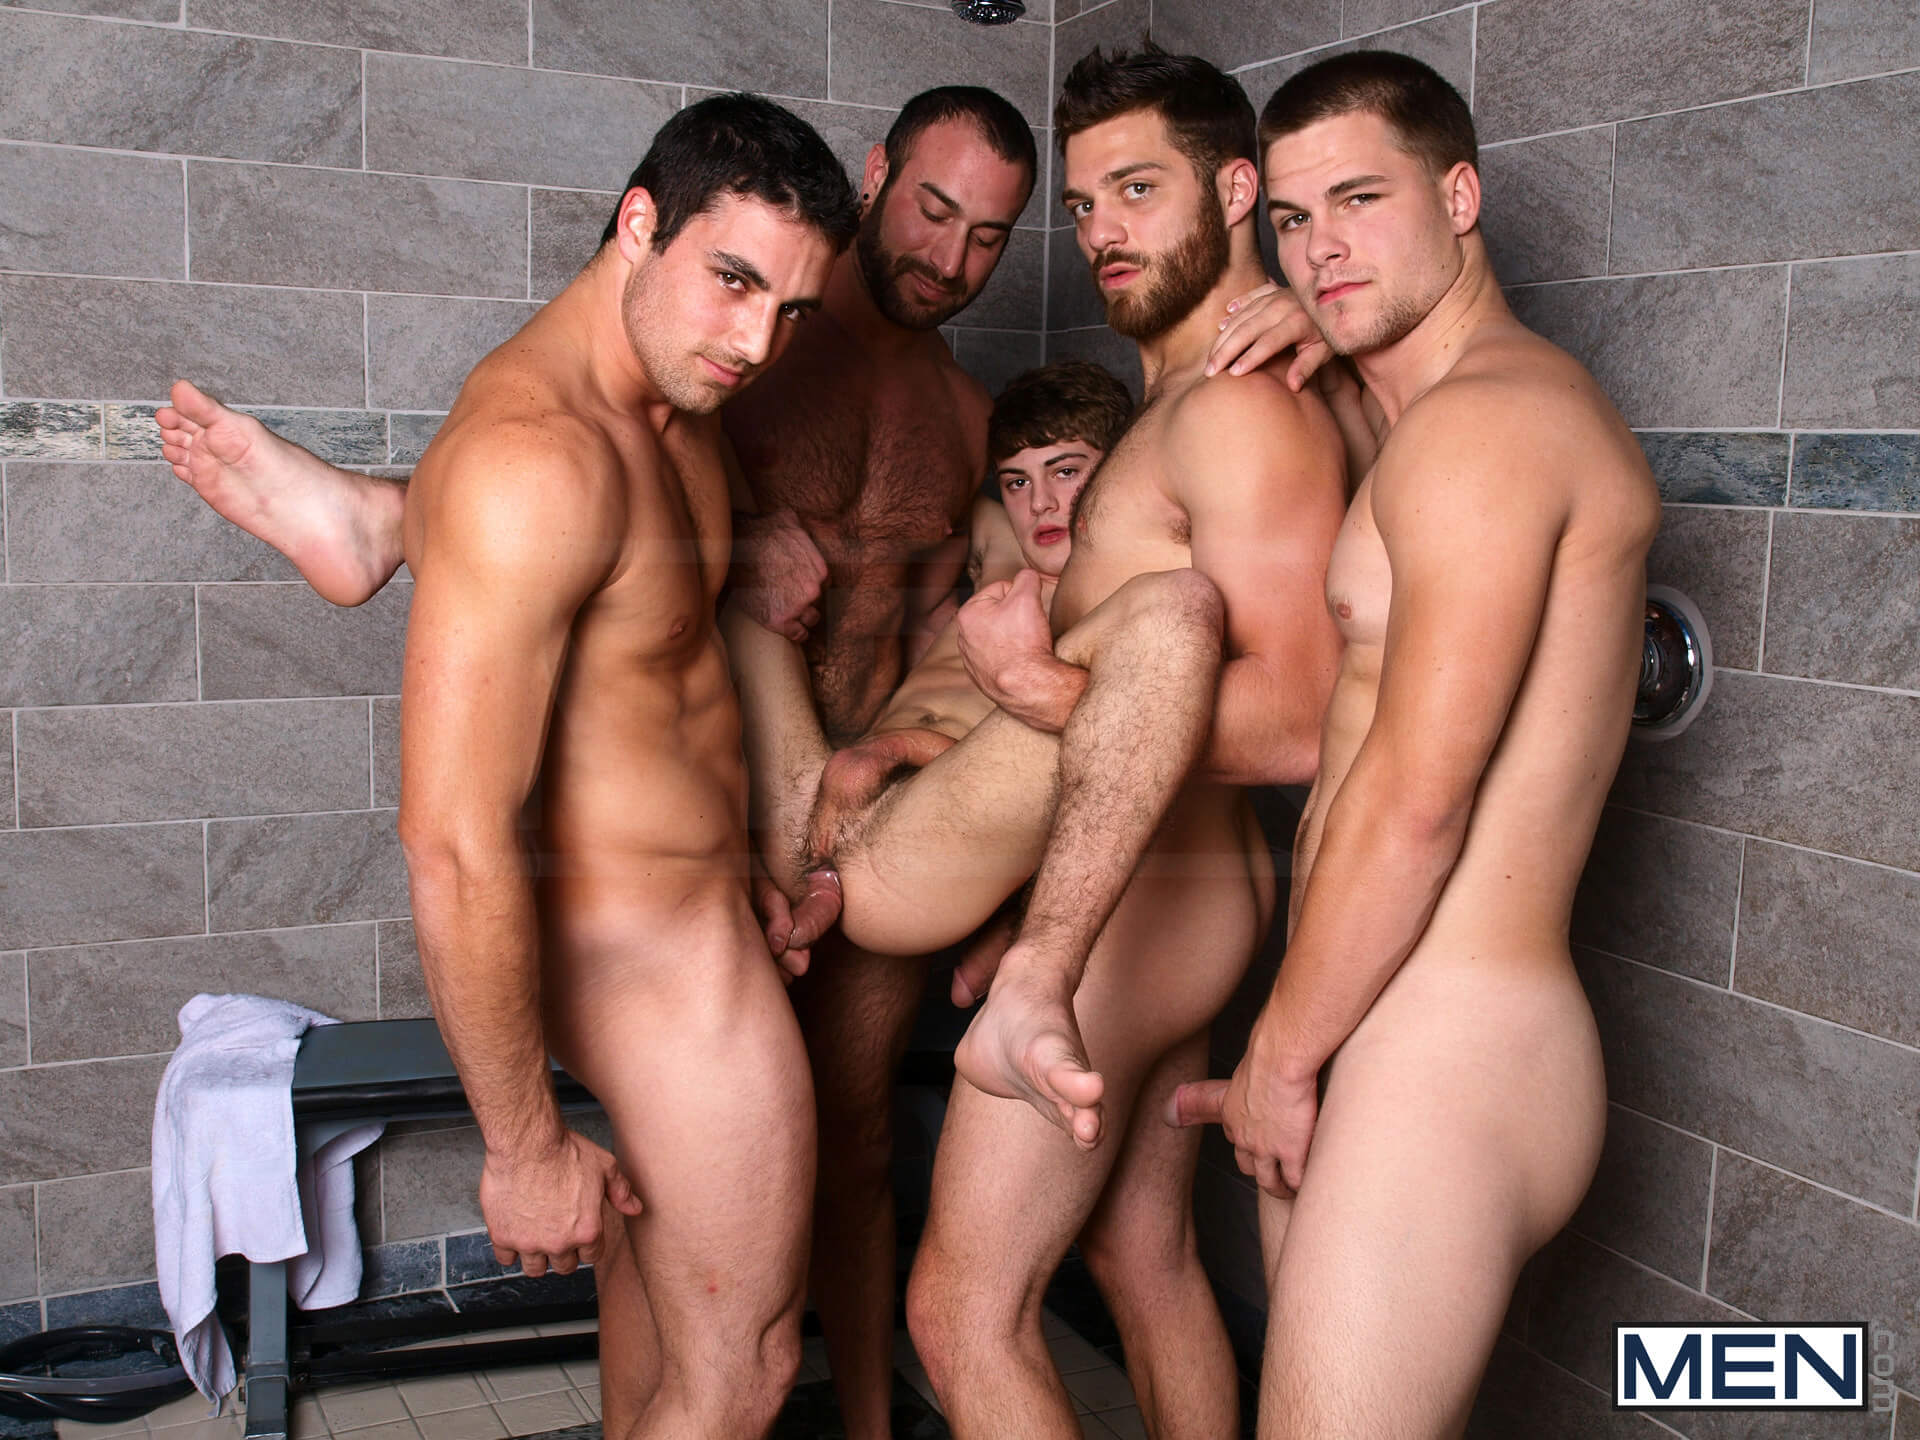 MEN.COM » Jizz Orgy » Jizz Shower » Hunter Page » Jack King » Jimmy Johnson » Spencer Reed » Tommy Defendi